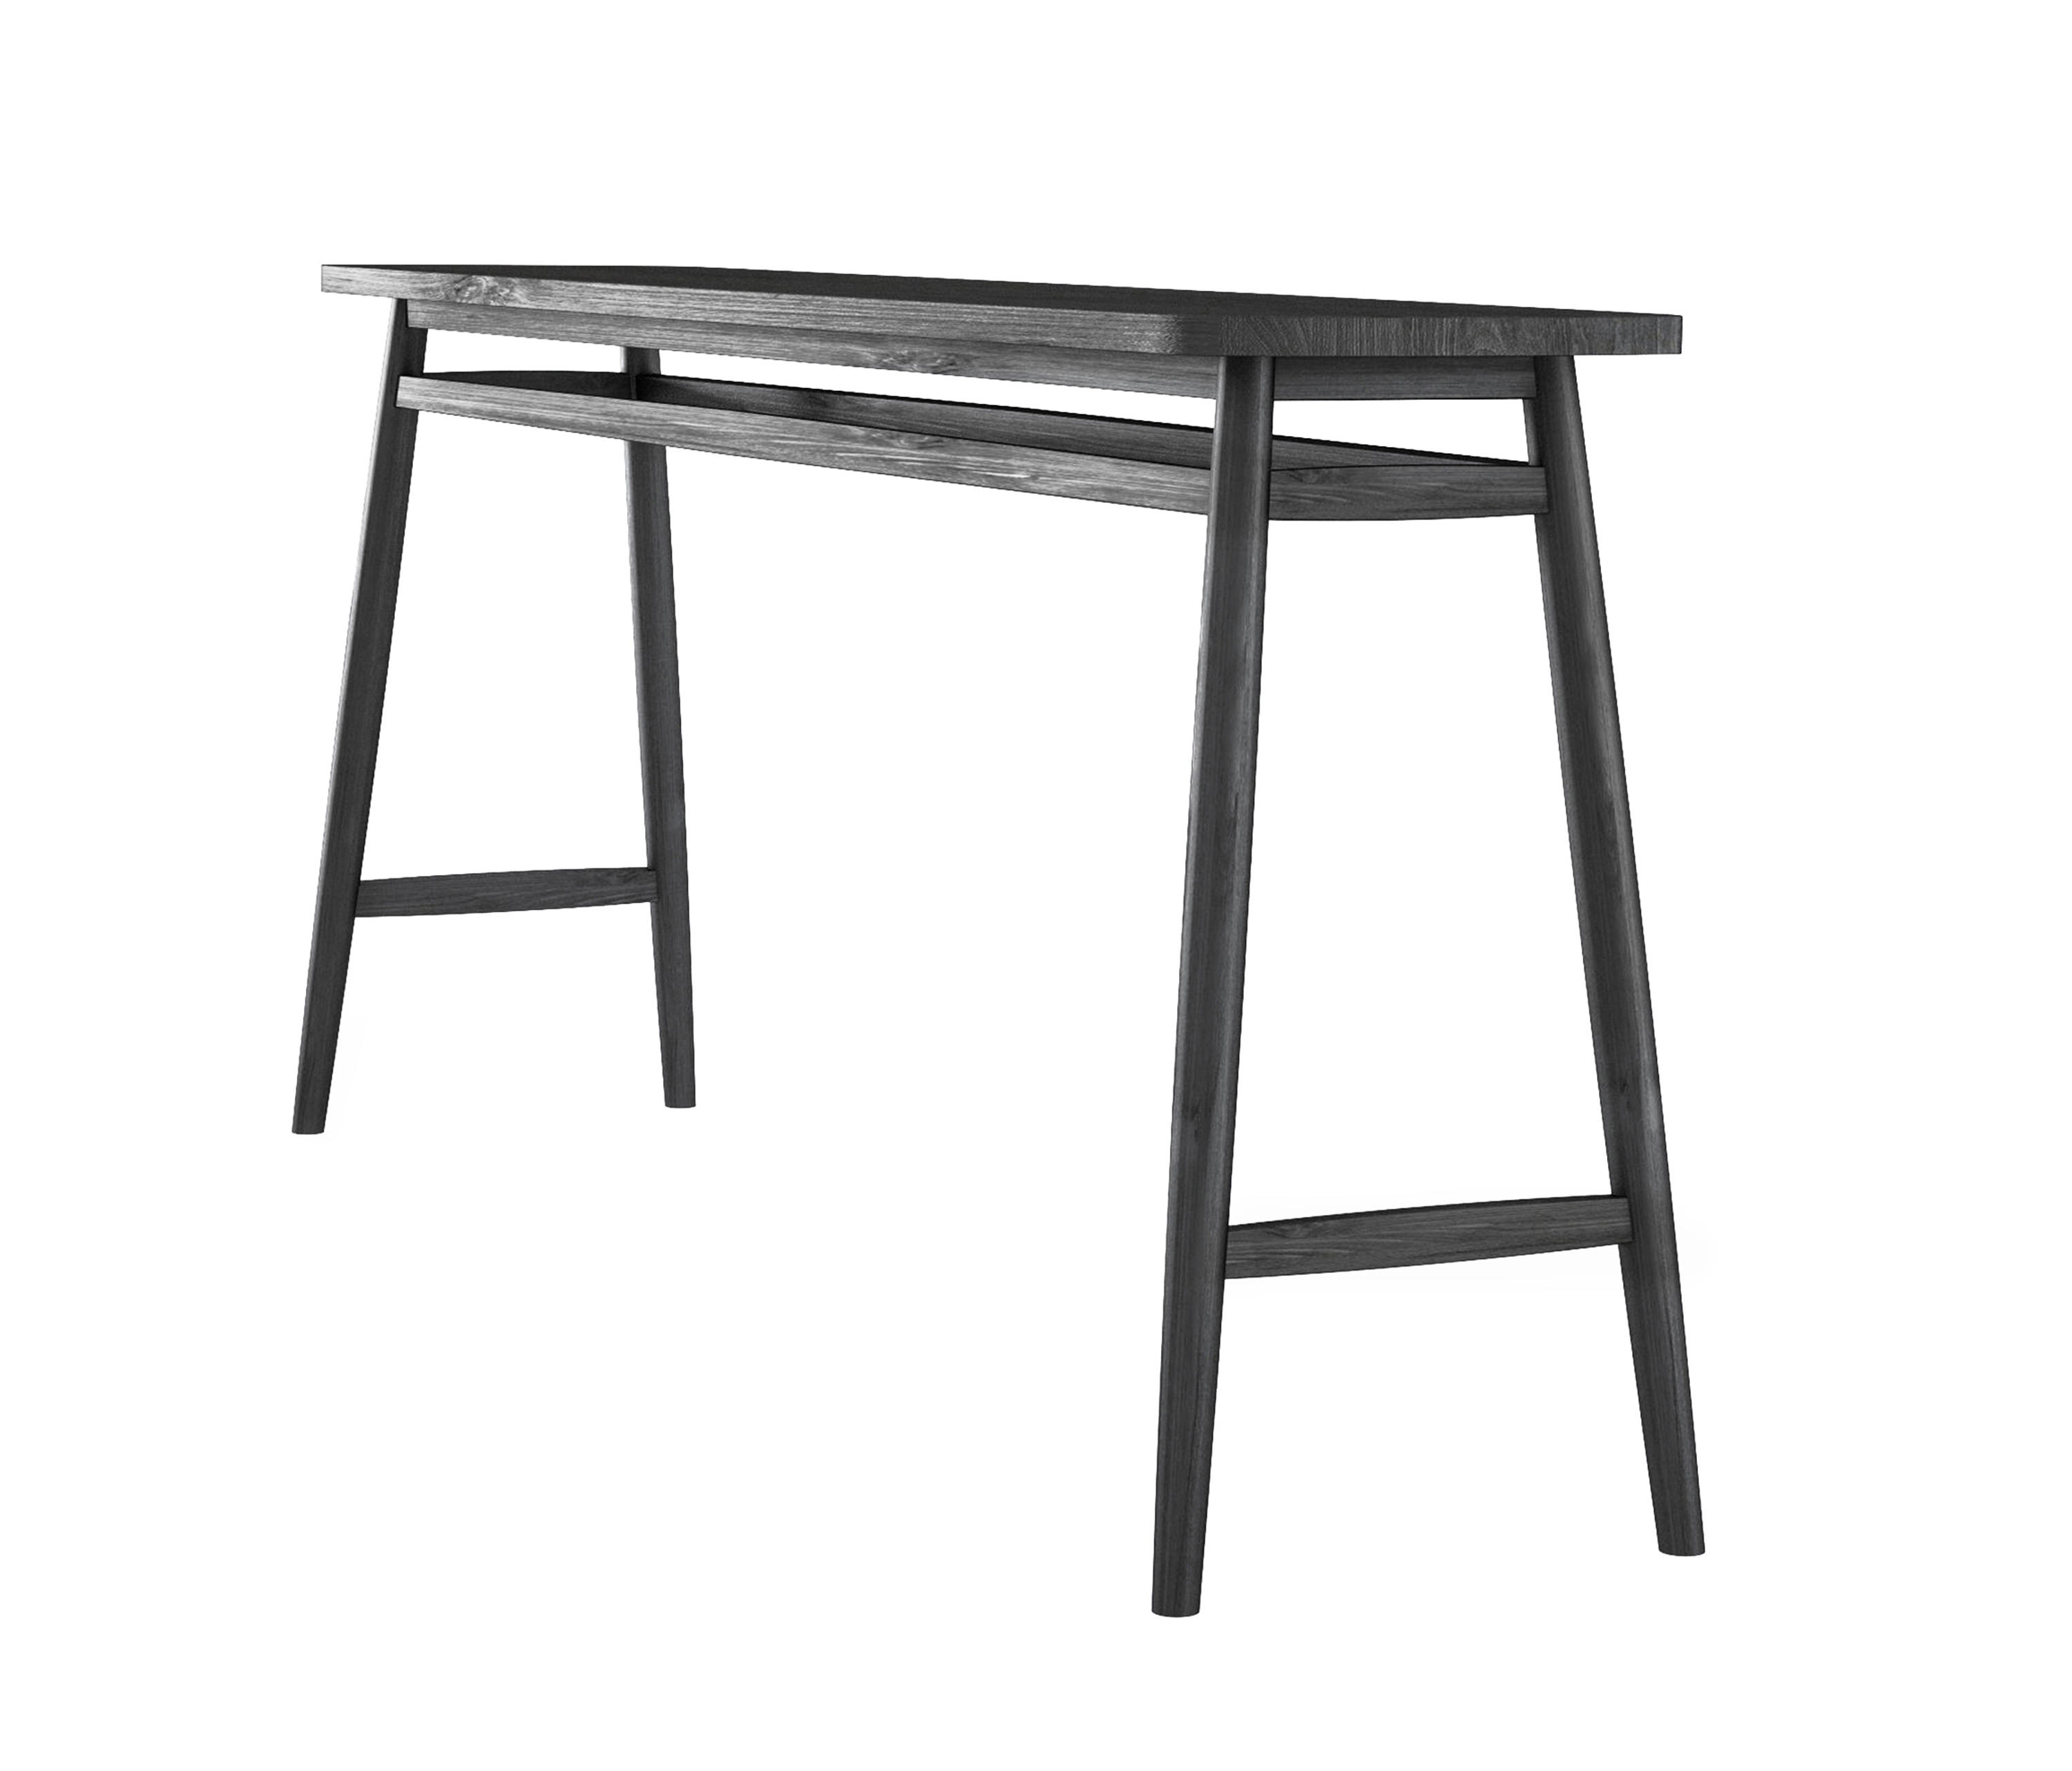 Twist console table wall shelves from karpenter architonic twist console table by karpenter wall shelves geotapseo Gallery